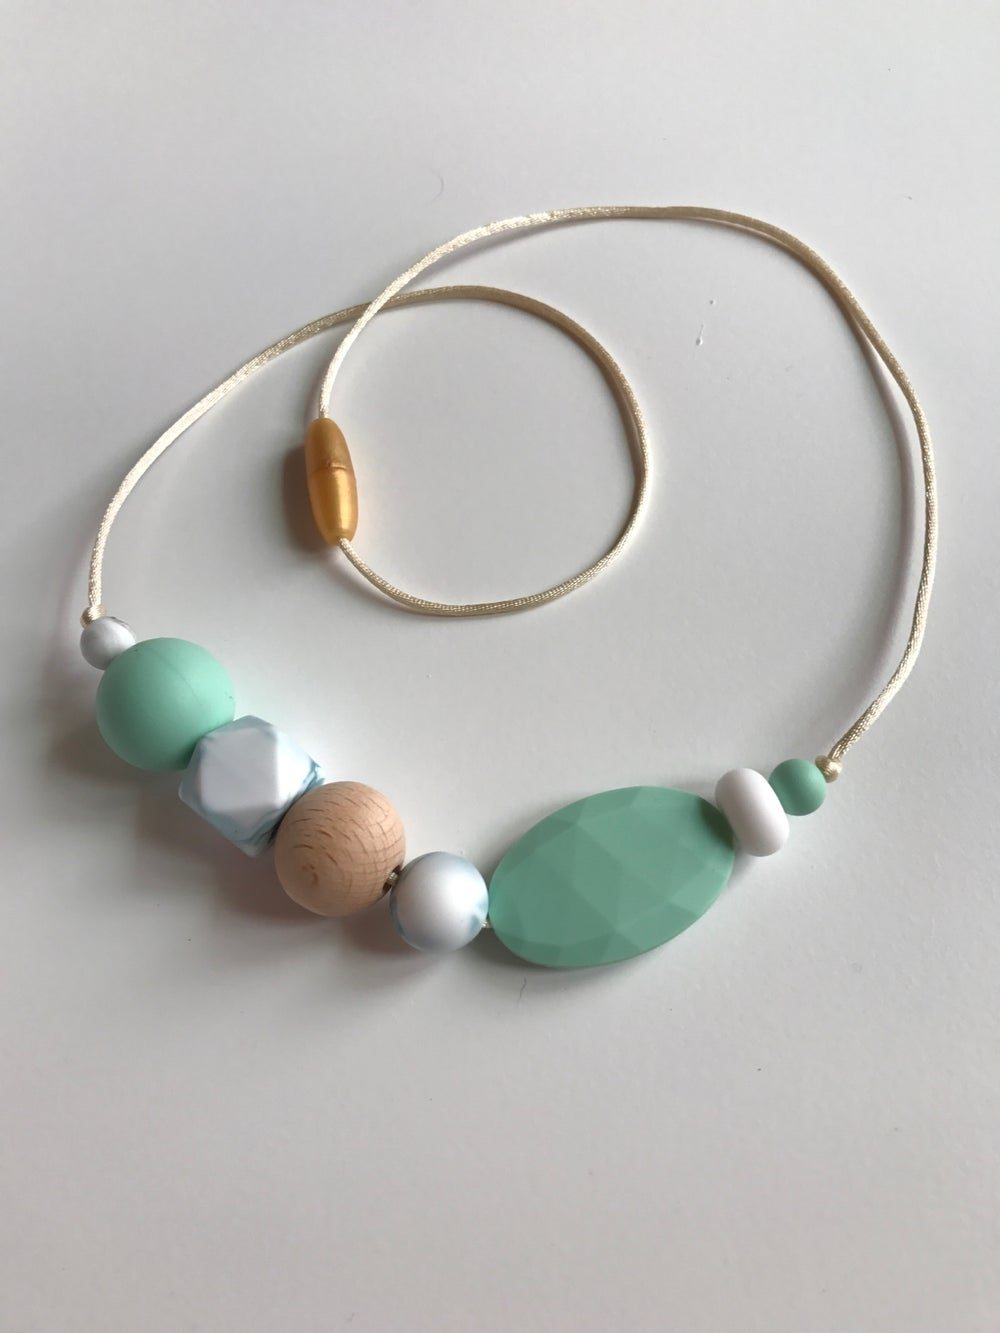 Image of 'Cocos' Sensory Silicone Bead Necklace (BPA free)